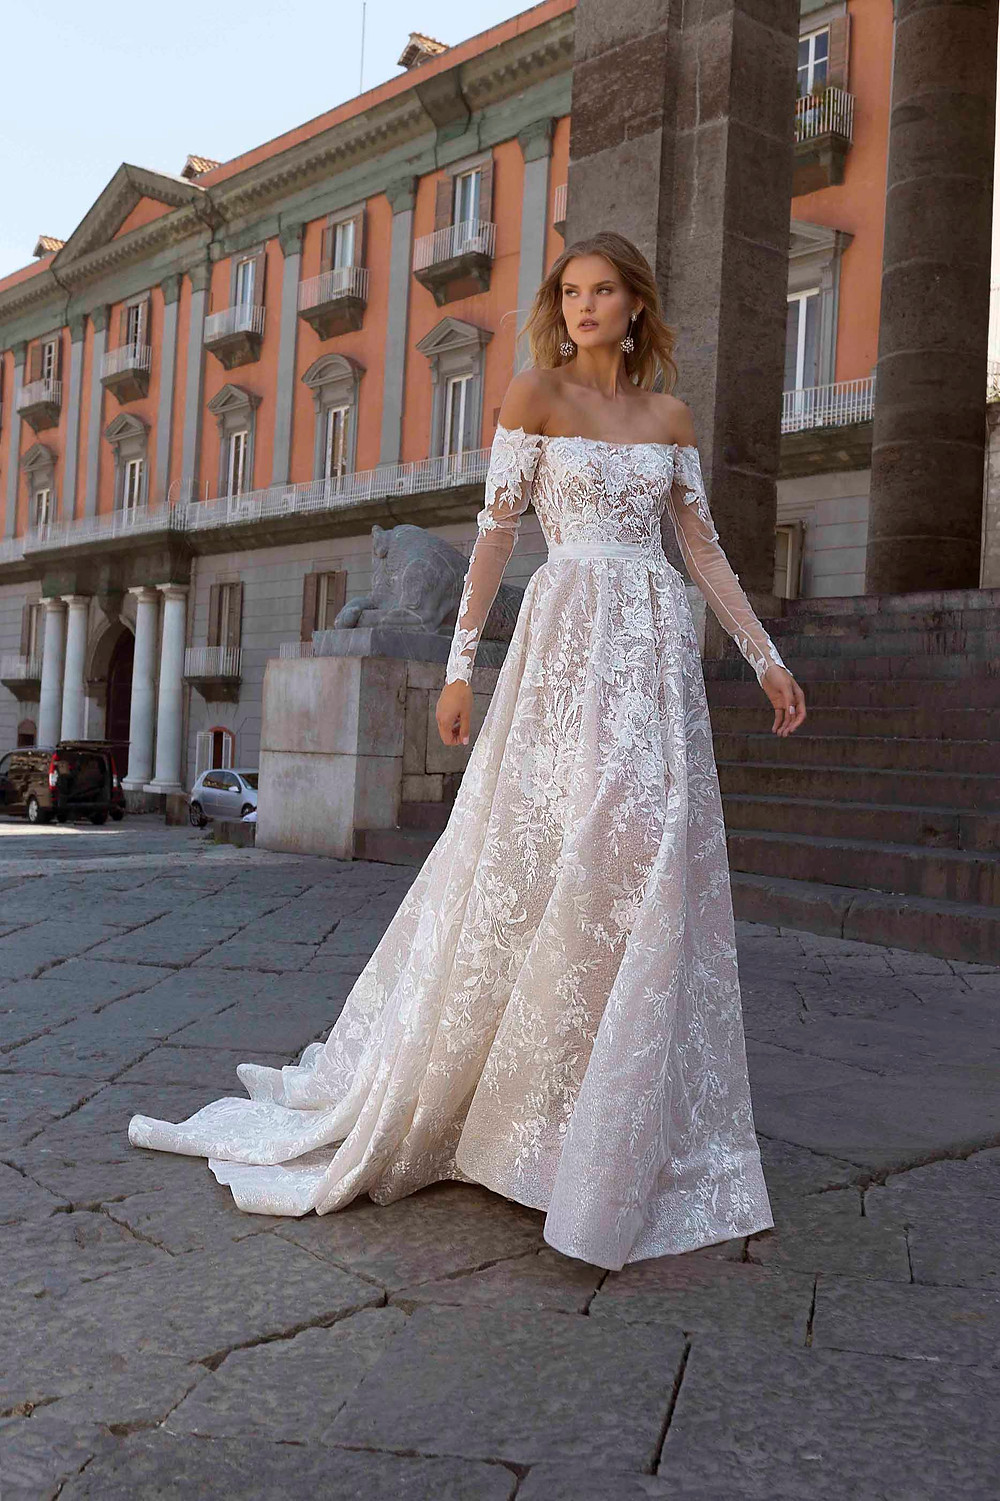 An off the shoulder, A-line wedding dress, with long illusion sleeves and lace